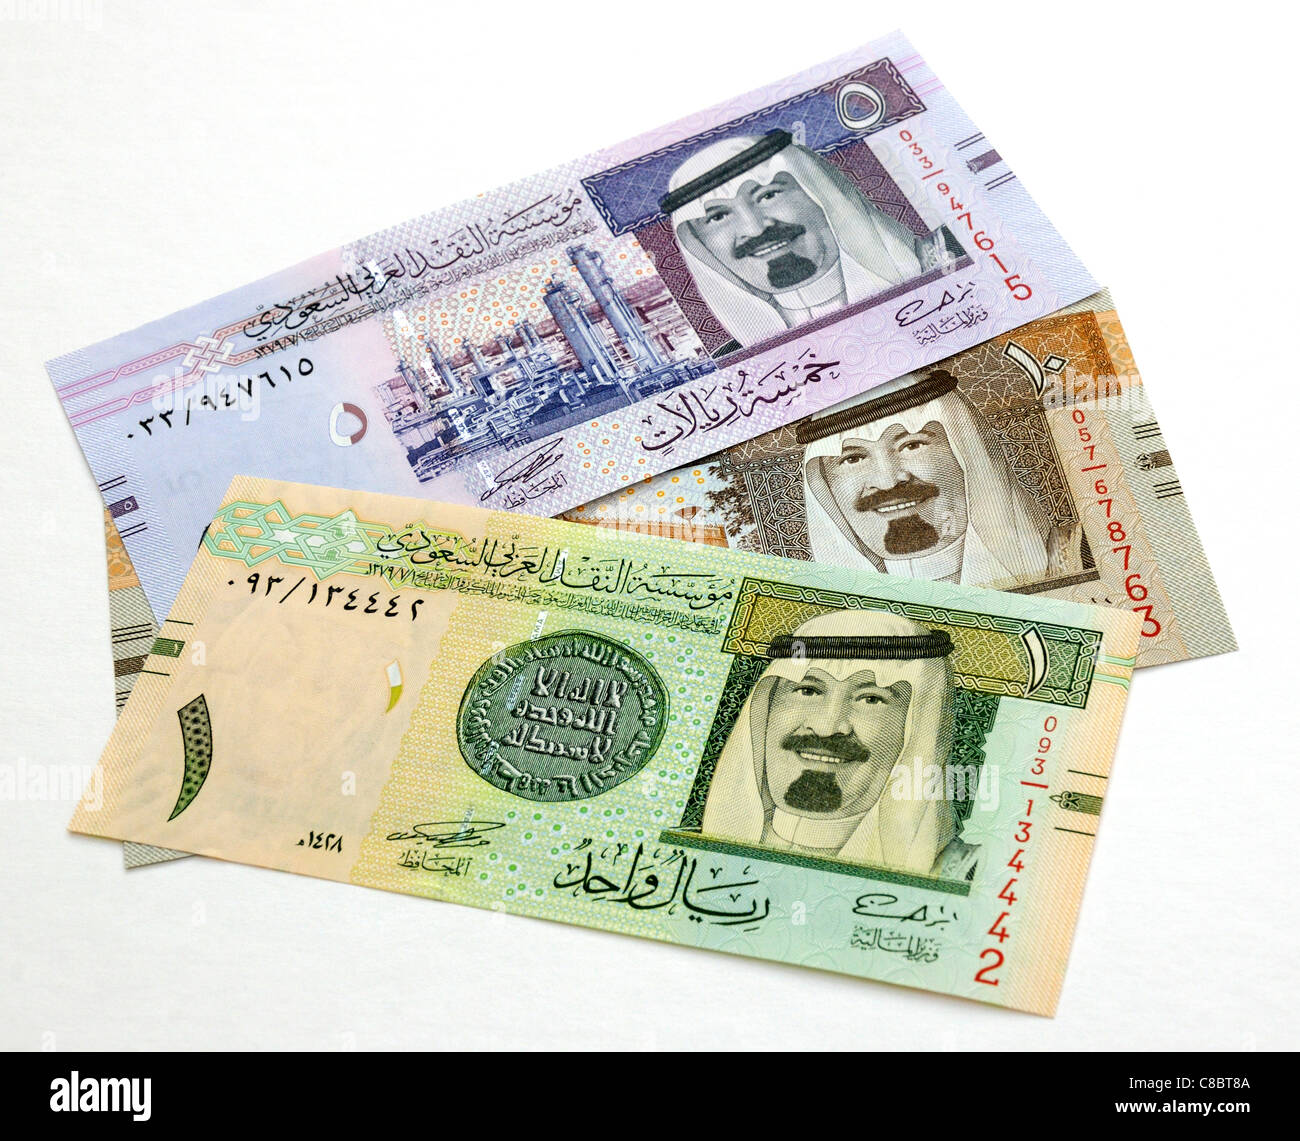 Saudi Arabia Bank Notes. - Stock Image